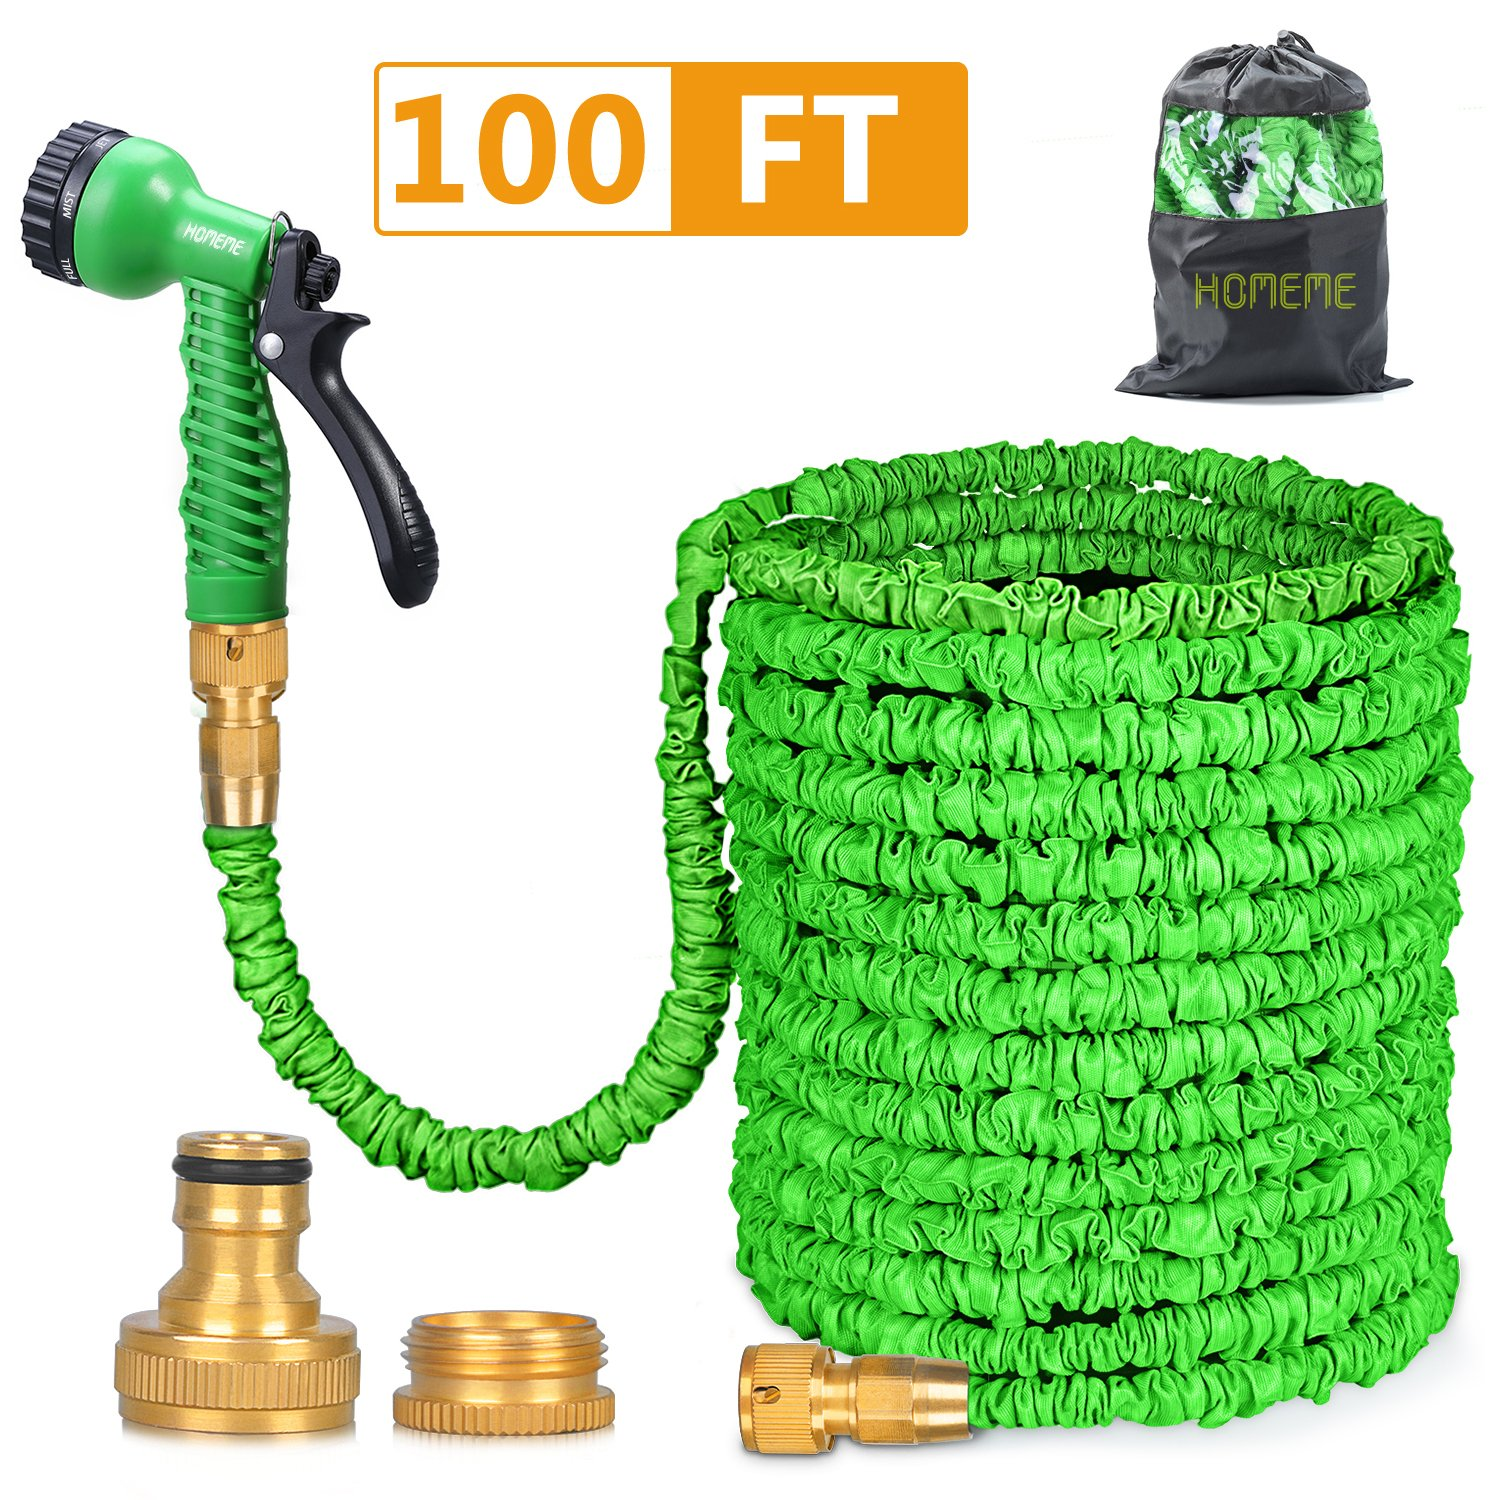 Homeme Expandable Flexible Garden Hose